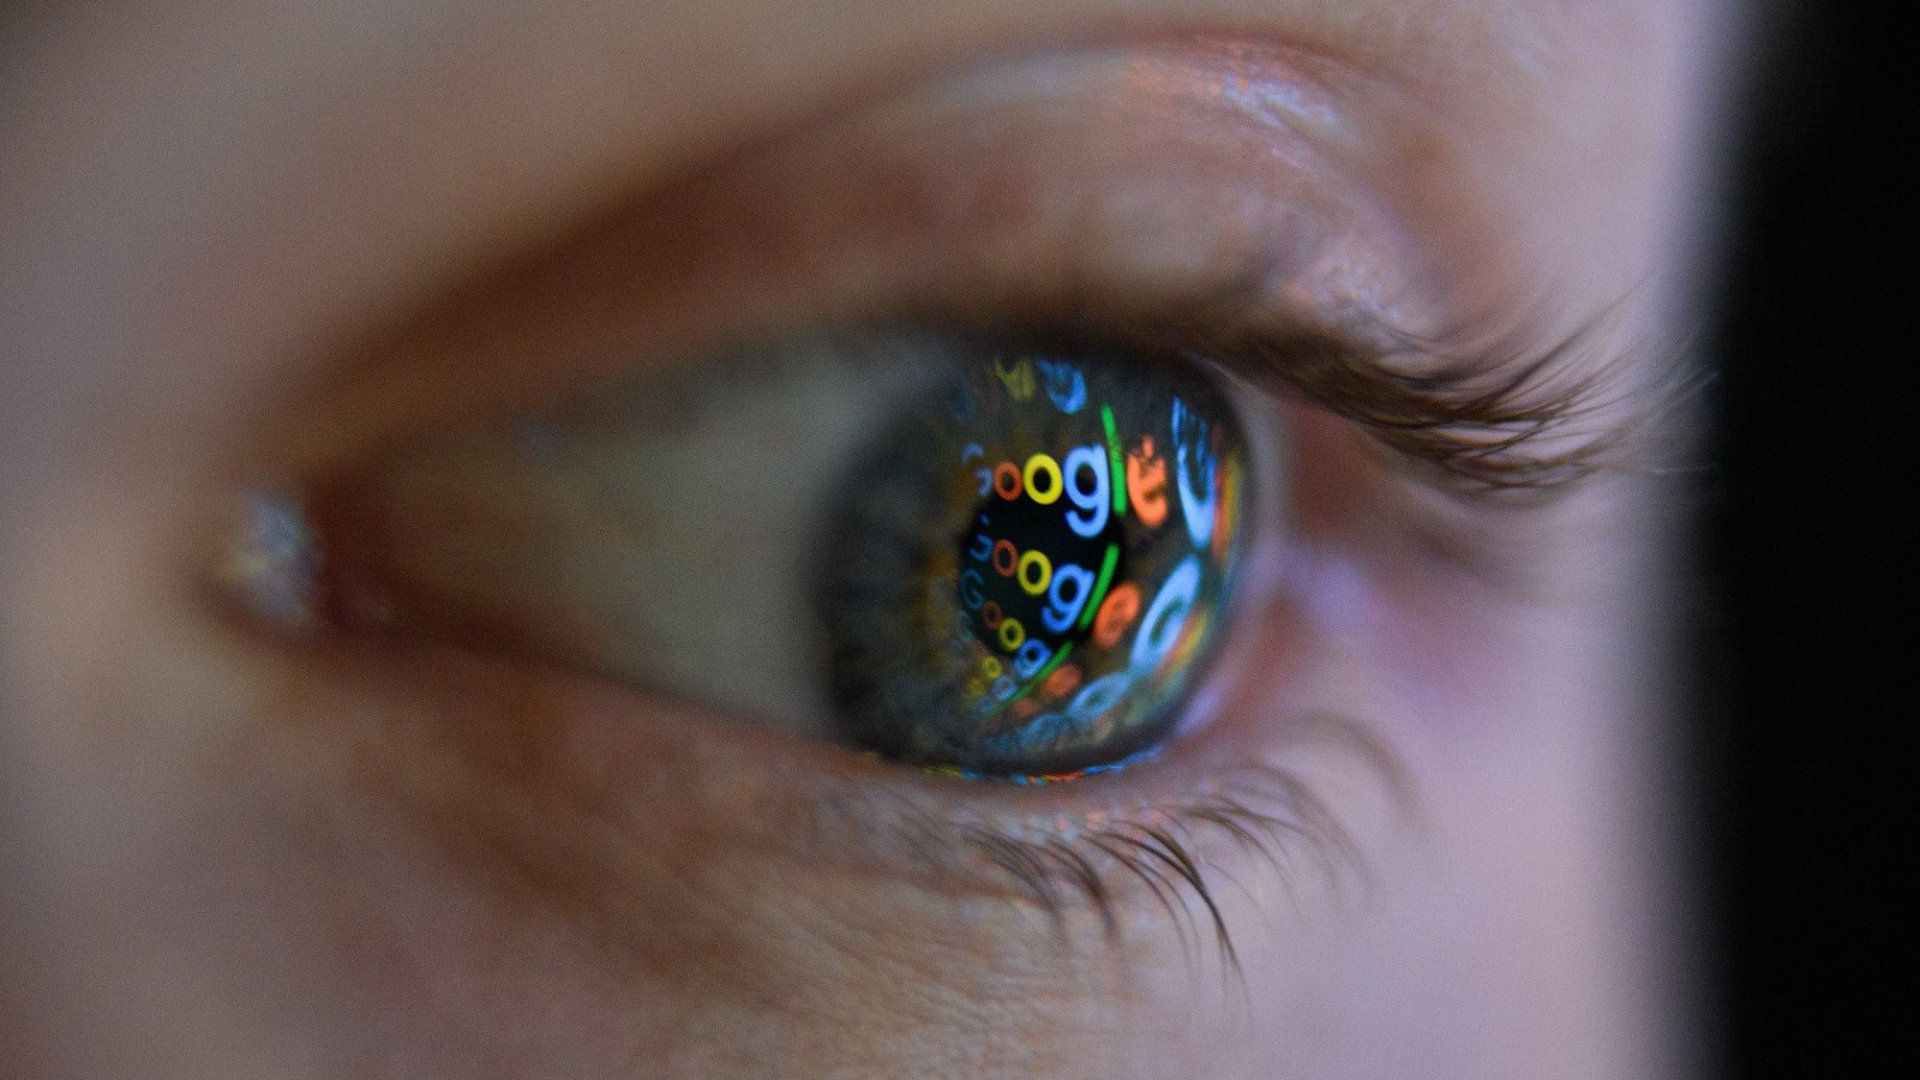 This New Study Cracks Google's Algorithm for 2018 (Here's What's At the Top of the List)